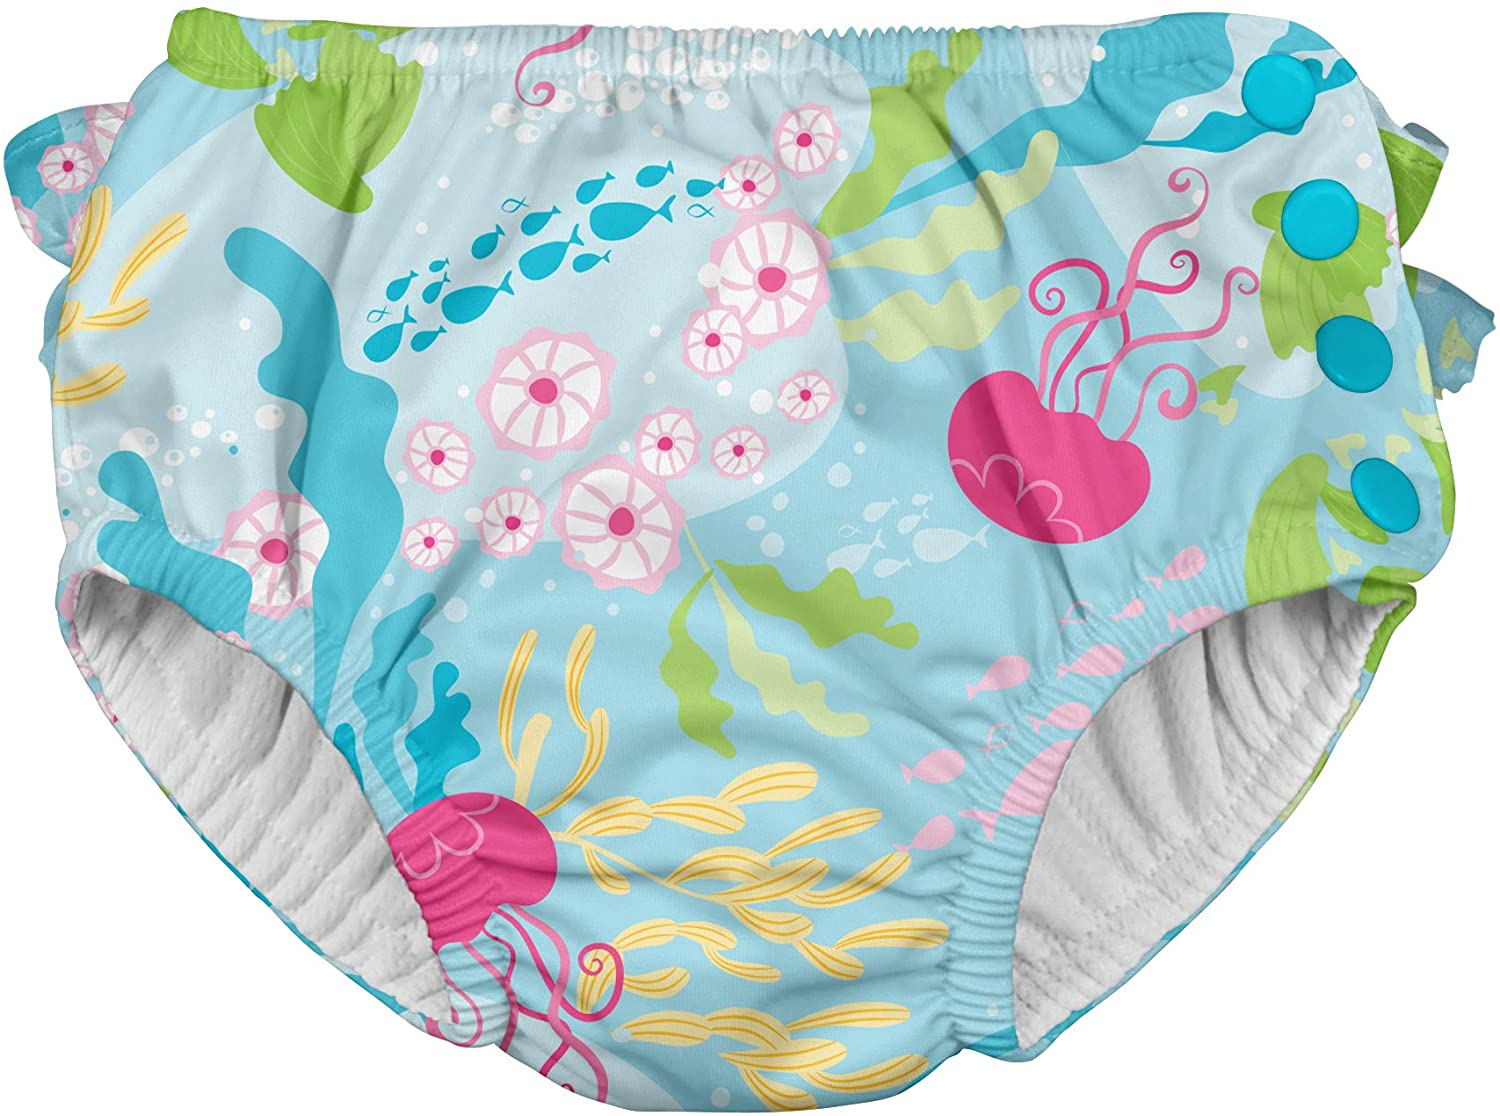 i play. by green sprouts Girls' Ruffle Snap Reusable Absorbent Swimsuit Diaper